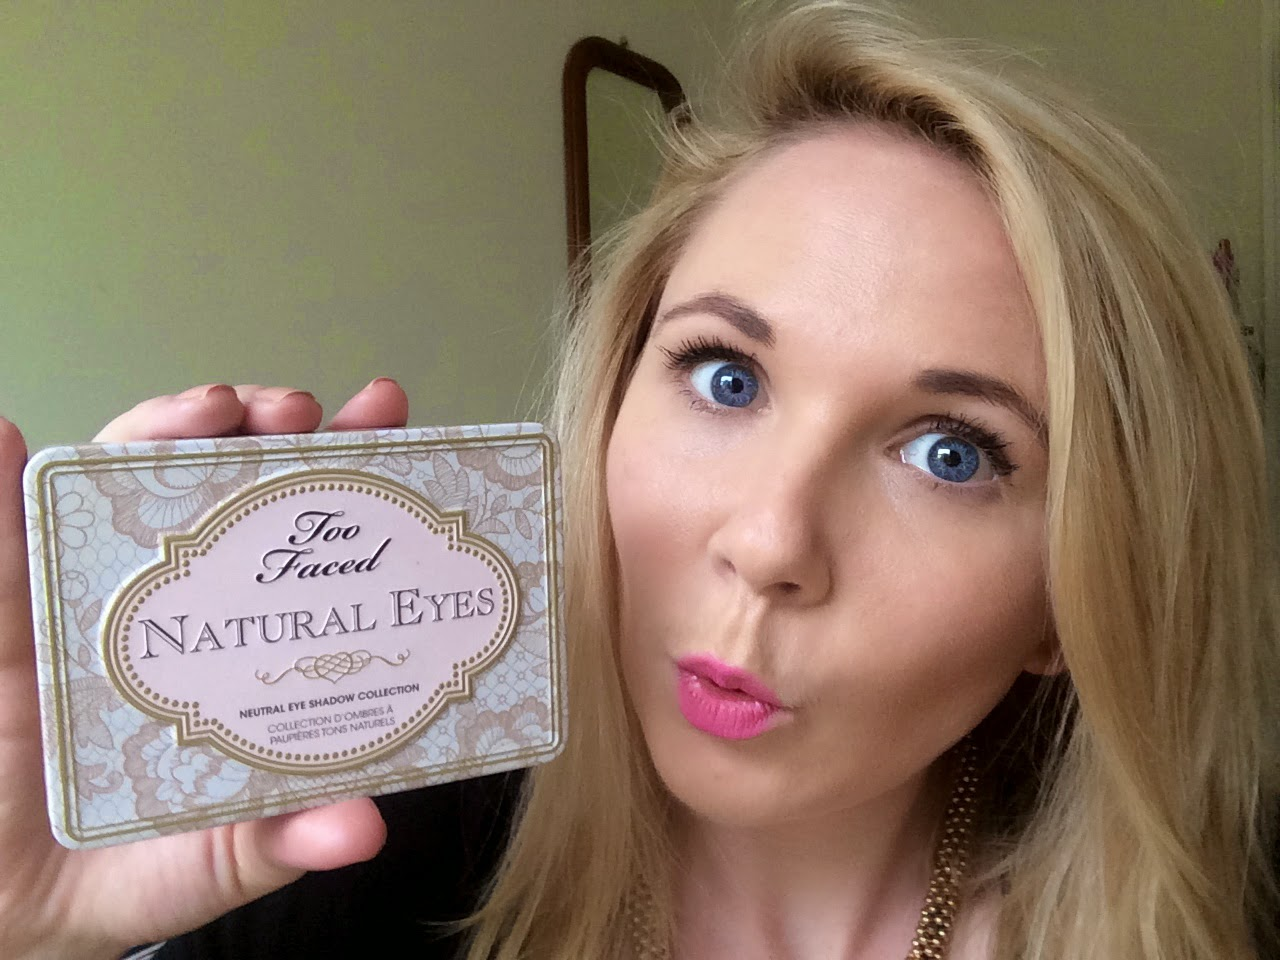 Too Faced Natural Eyes Shadow Pallet